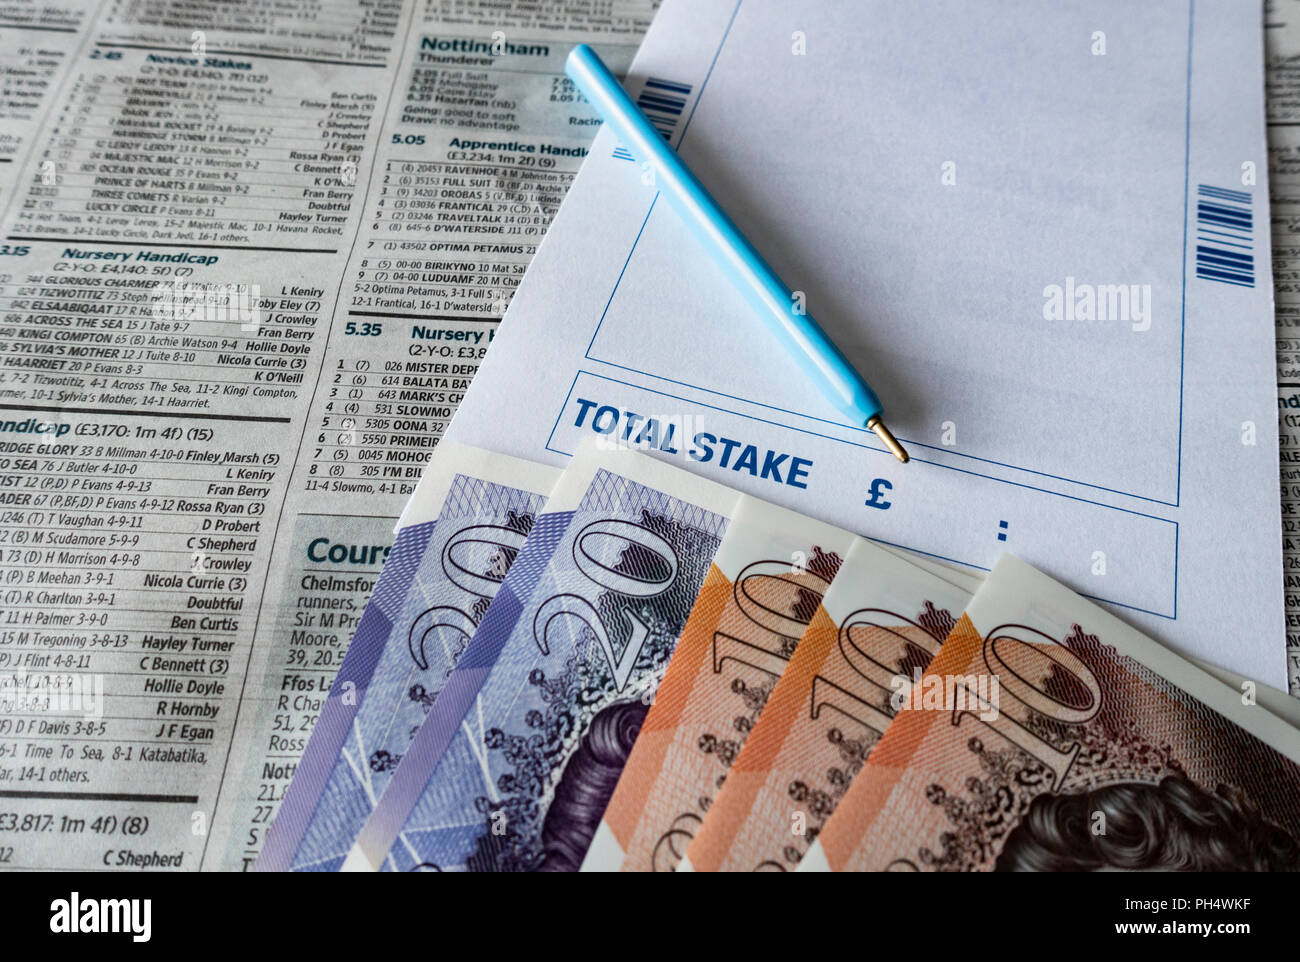 Betting slip with £10 and Twenty pound notes on horse racing page of UK newspaper. - Stock Image